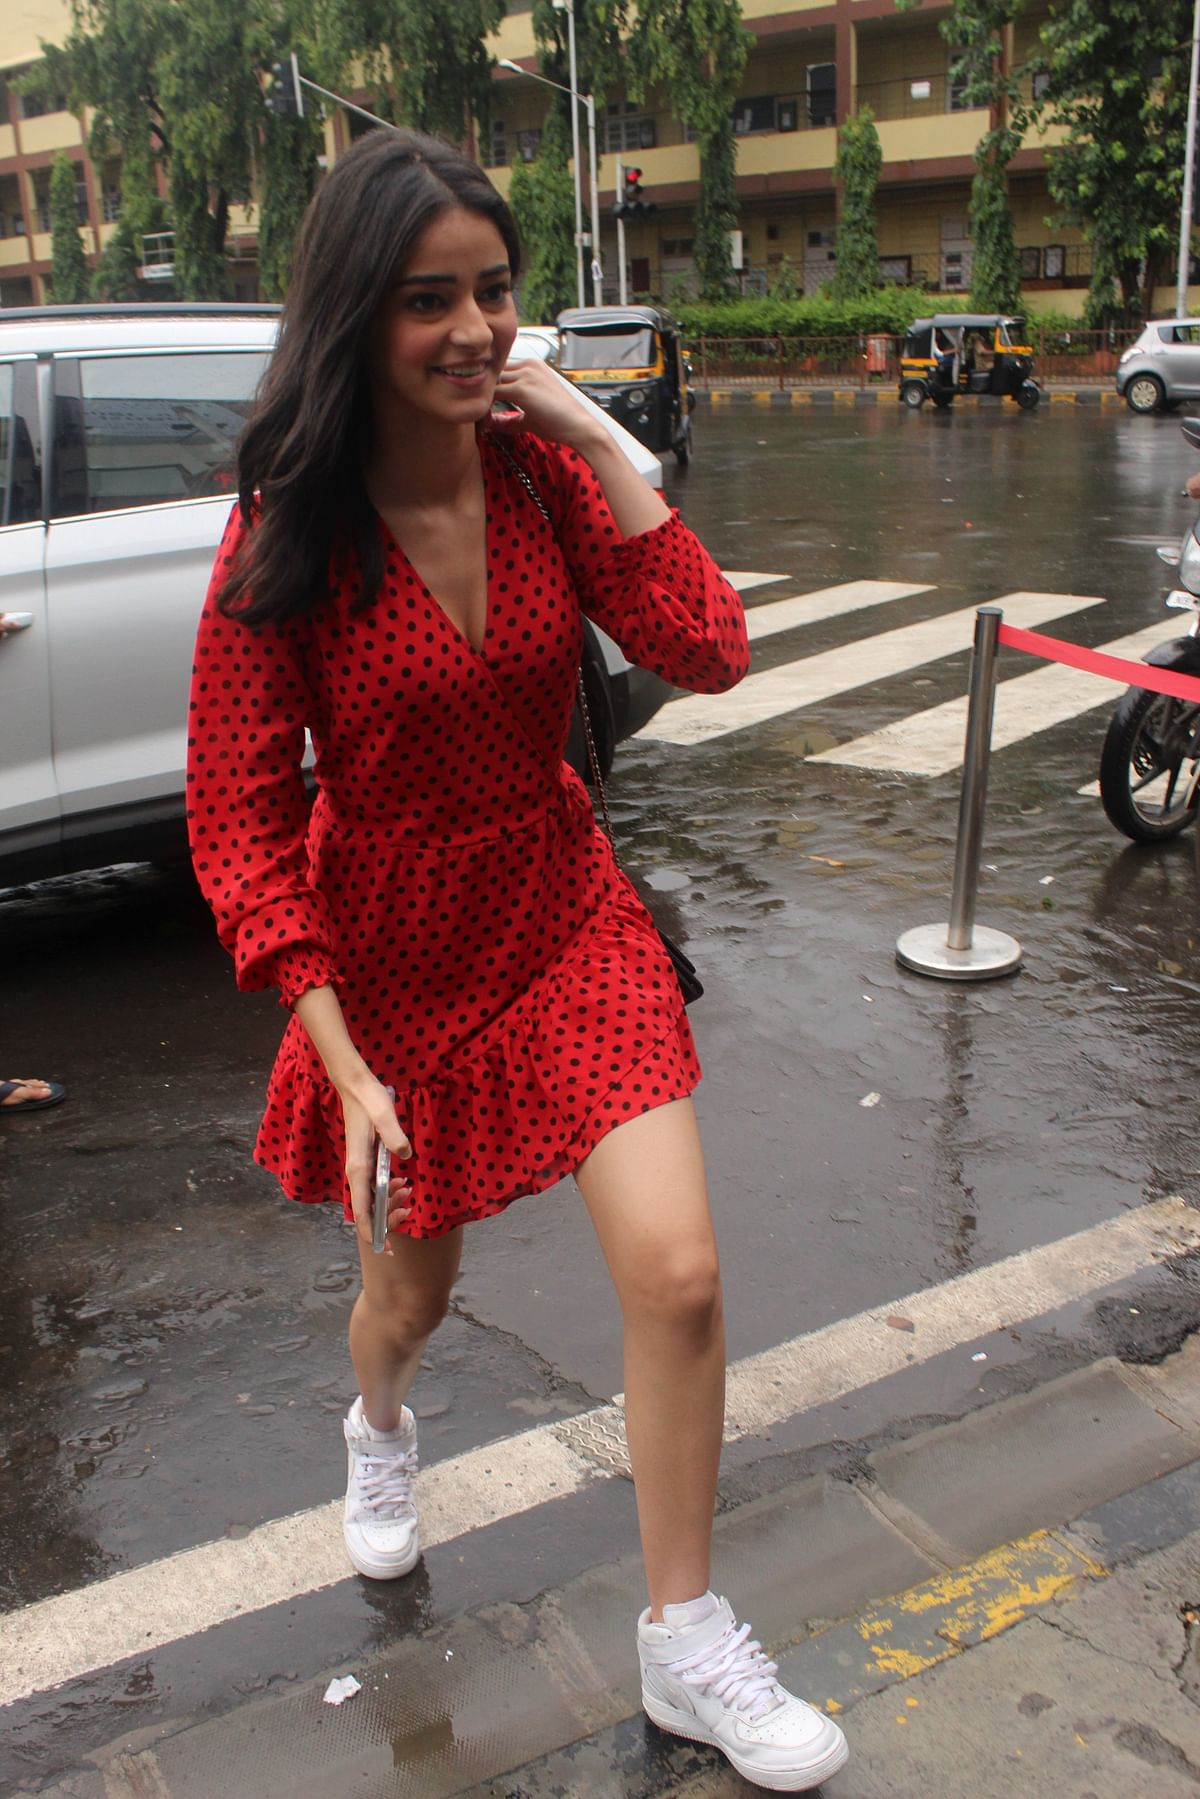 SOTY 2 star Ananya Panday also snapped outside the Bastian in Bandra.